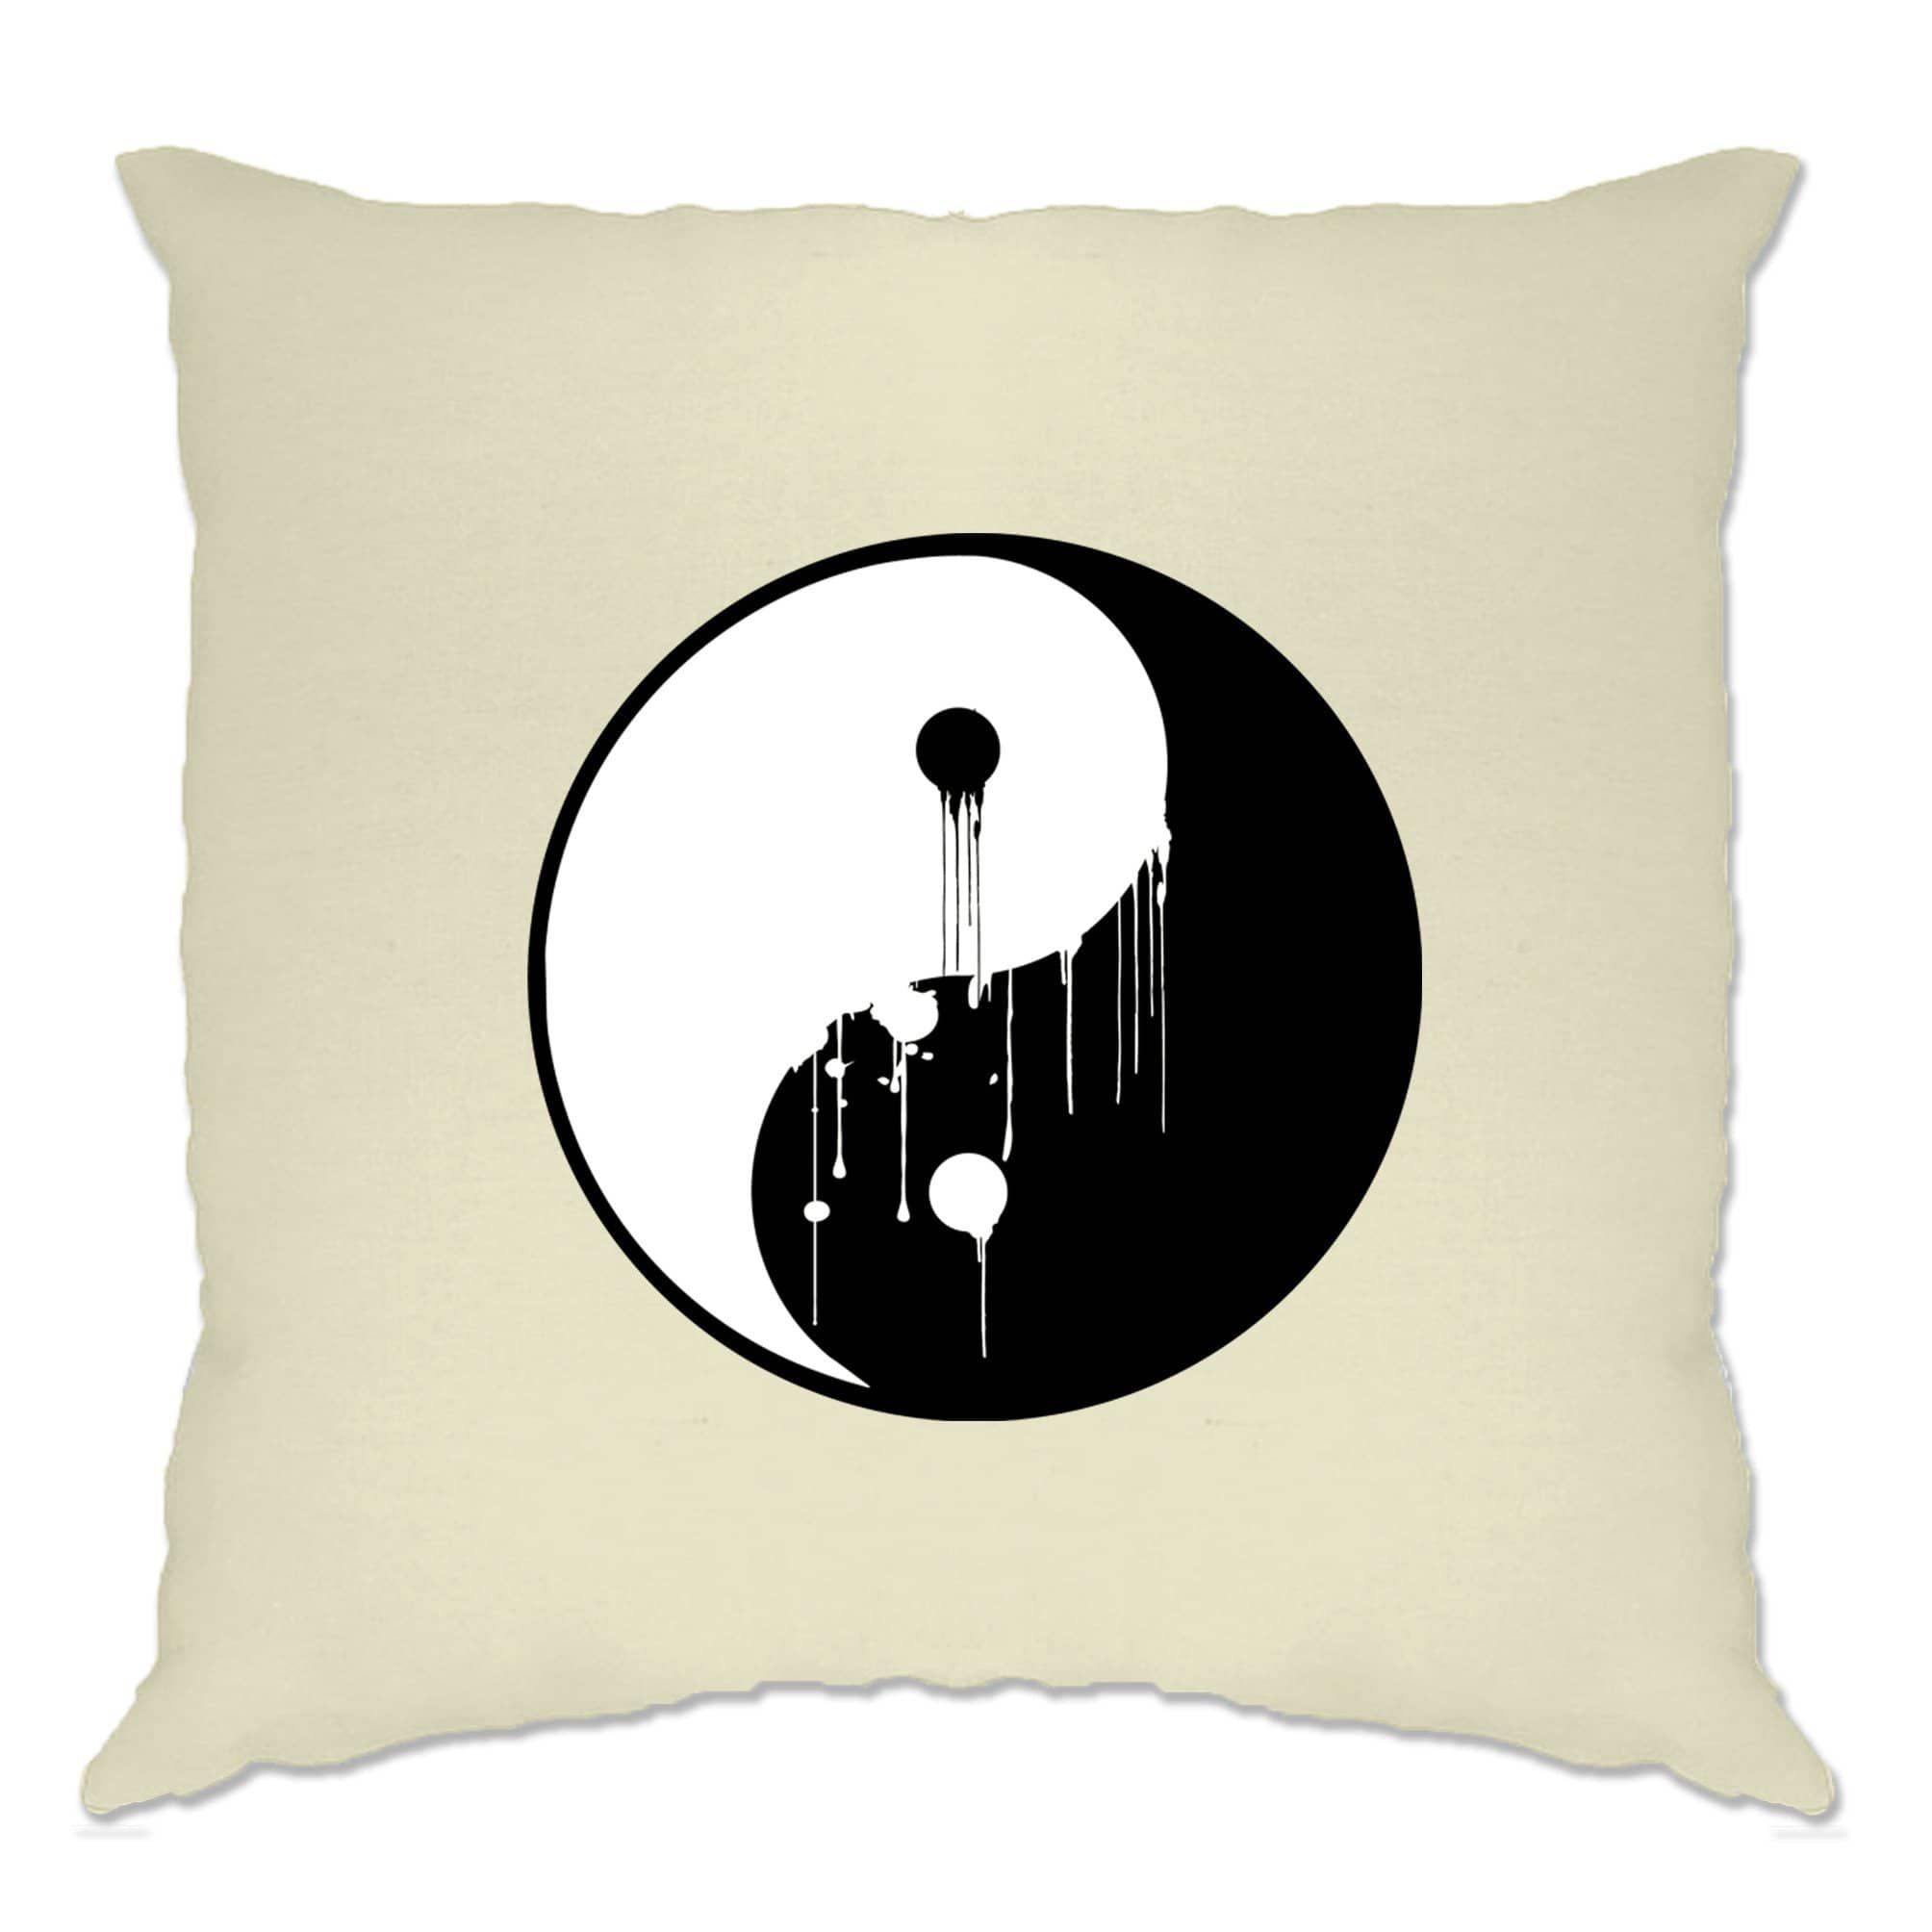 Art Cushion Cover Painted Dripping Ying Yang Balance Symbol